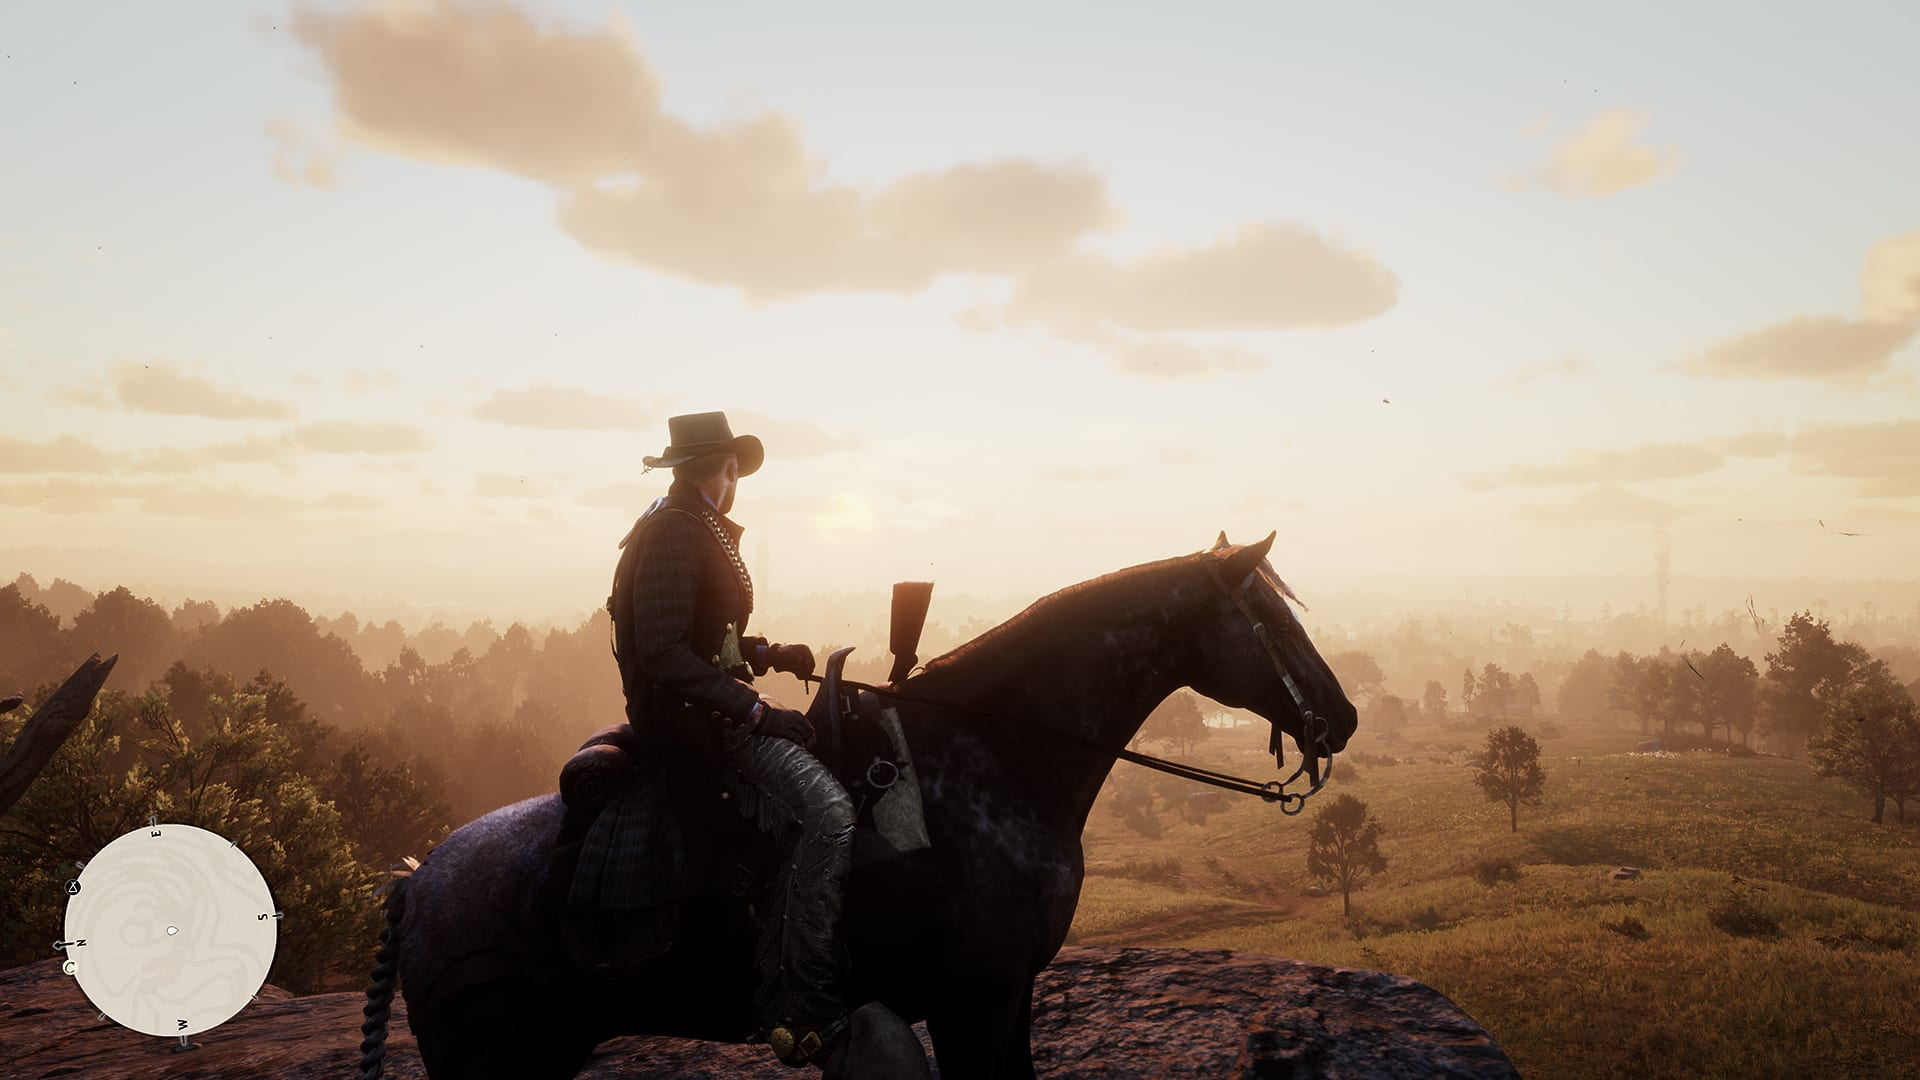 Red Dead Redemption 2 Landscape on Horse